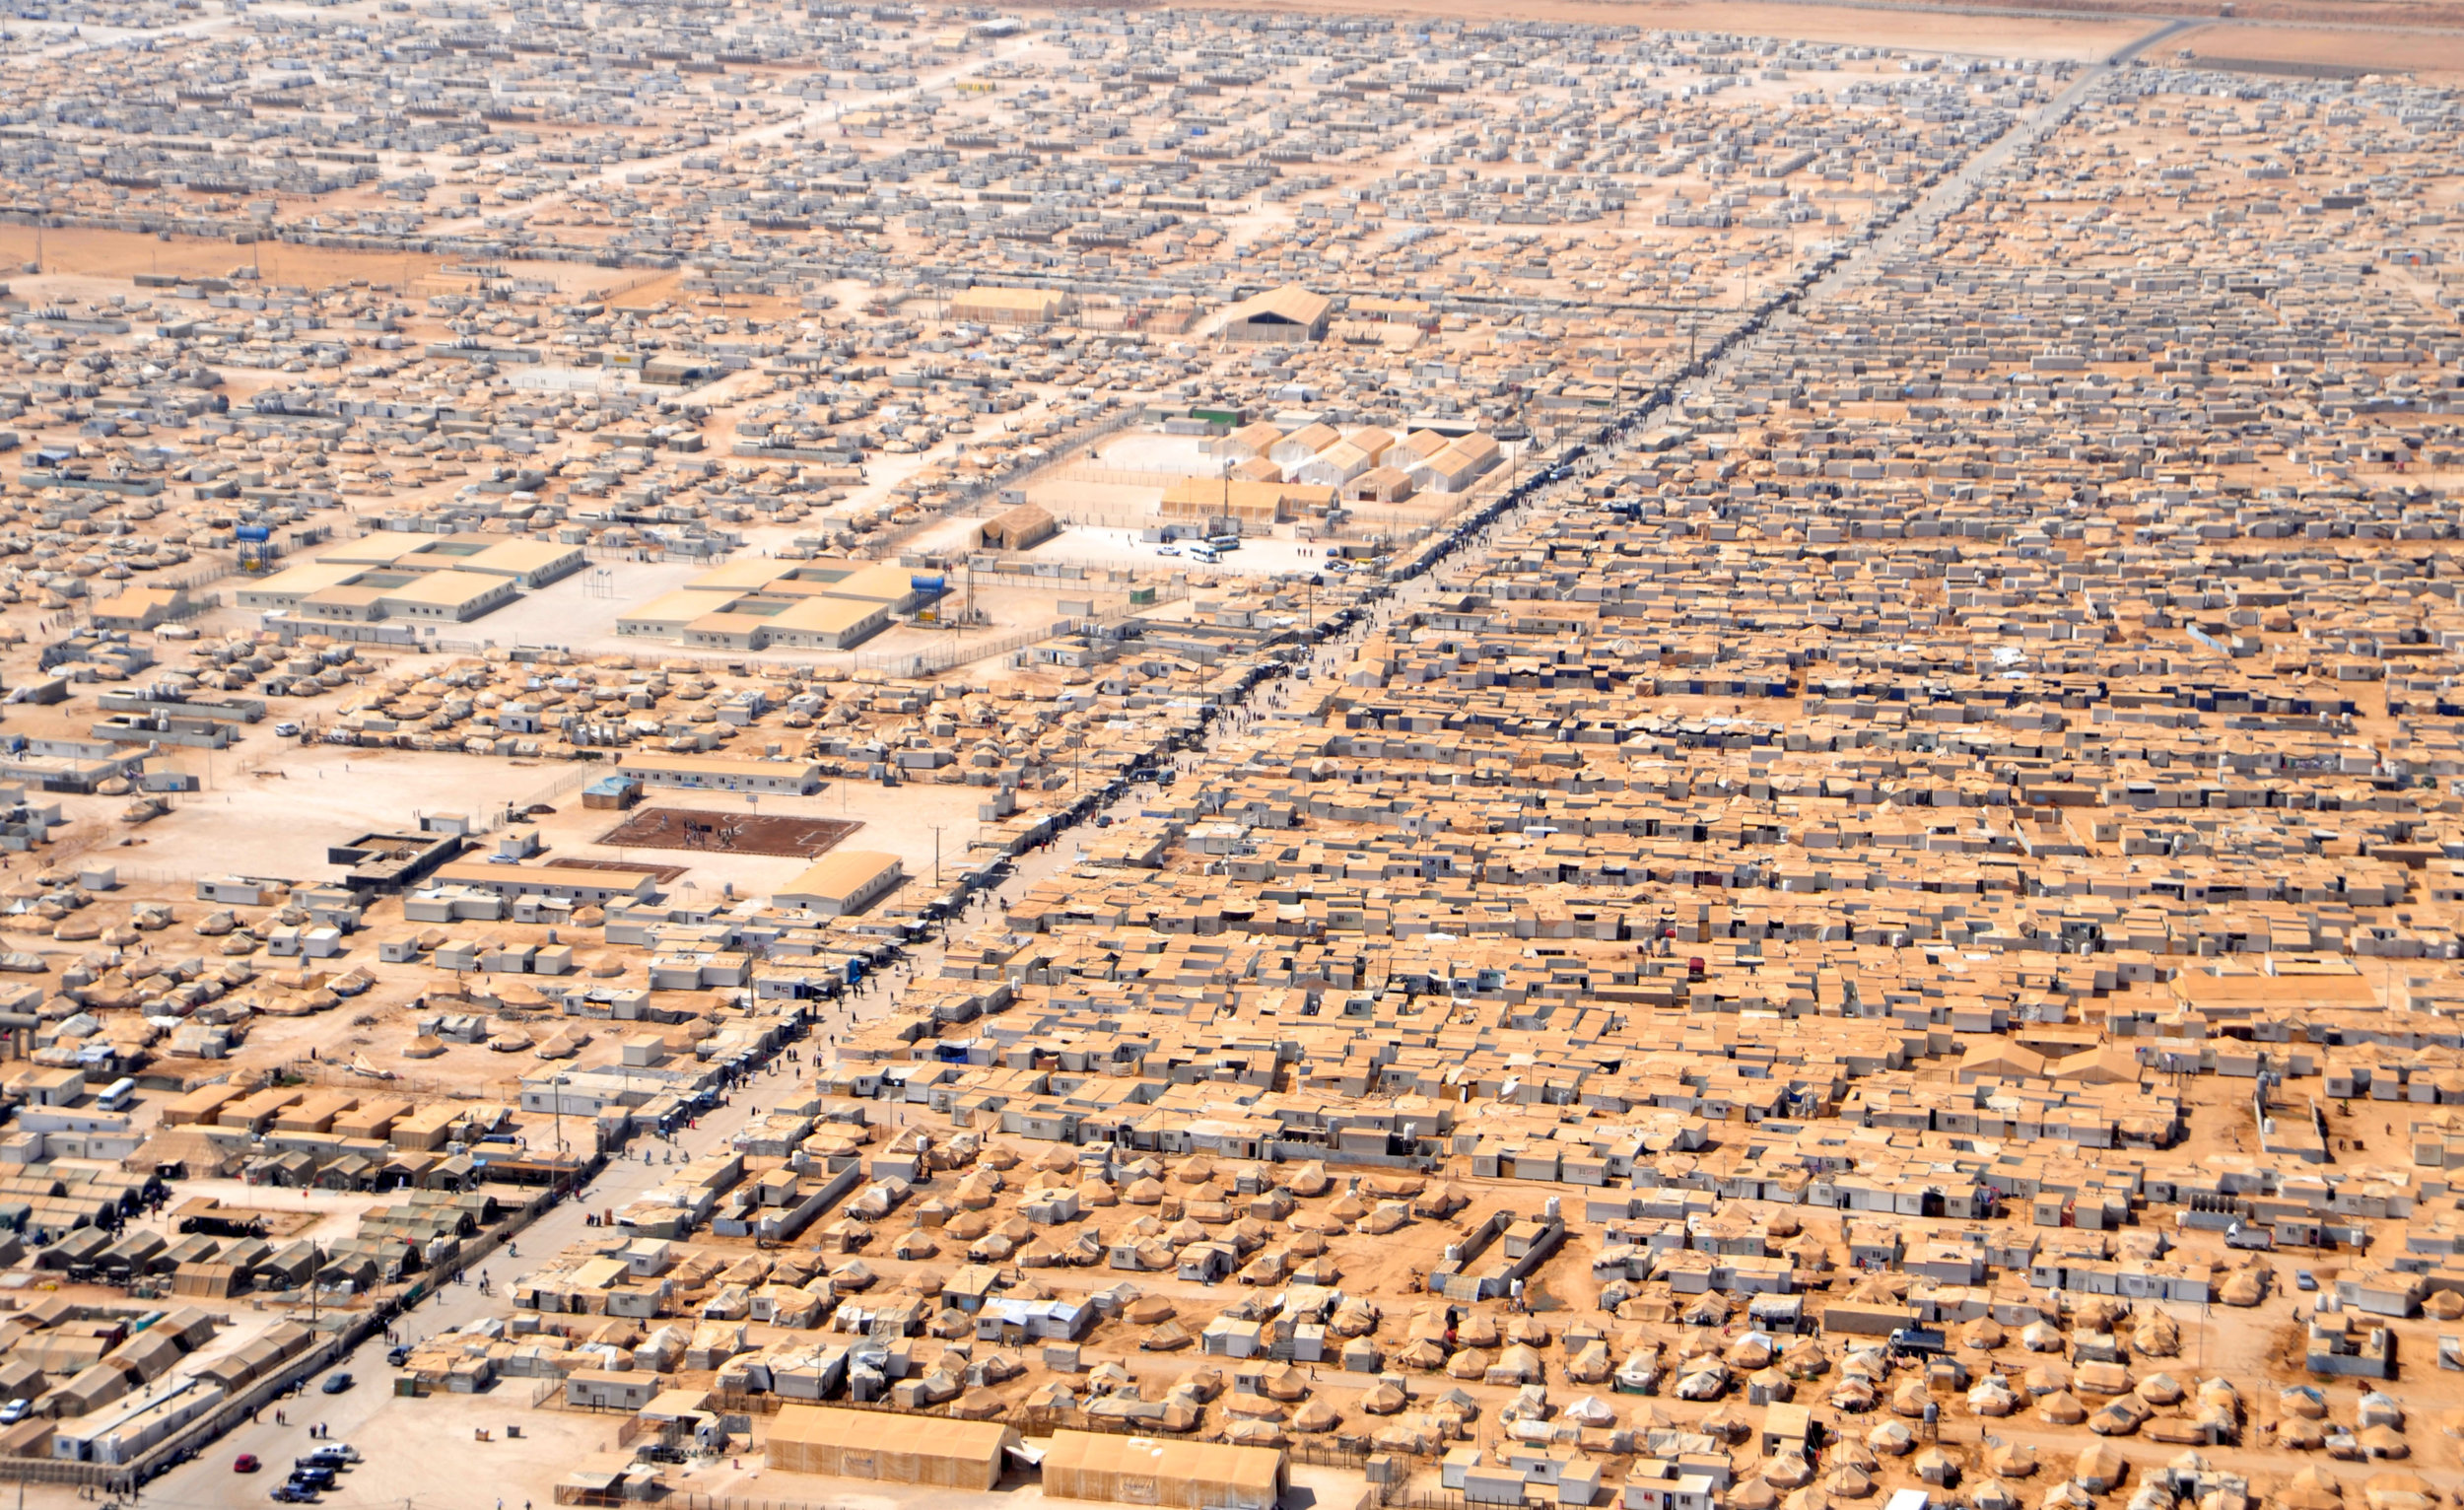 Figure 1. Za'atri camp in Jordan for Syrian refugees as seen on July 18, 2013. The view is from a helicopter carrying U.S. Secretary of State John Kerry and Jordanian Foreign Minister Nasser Judeh. Courtesy U.S. State Department.